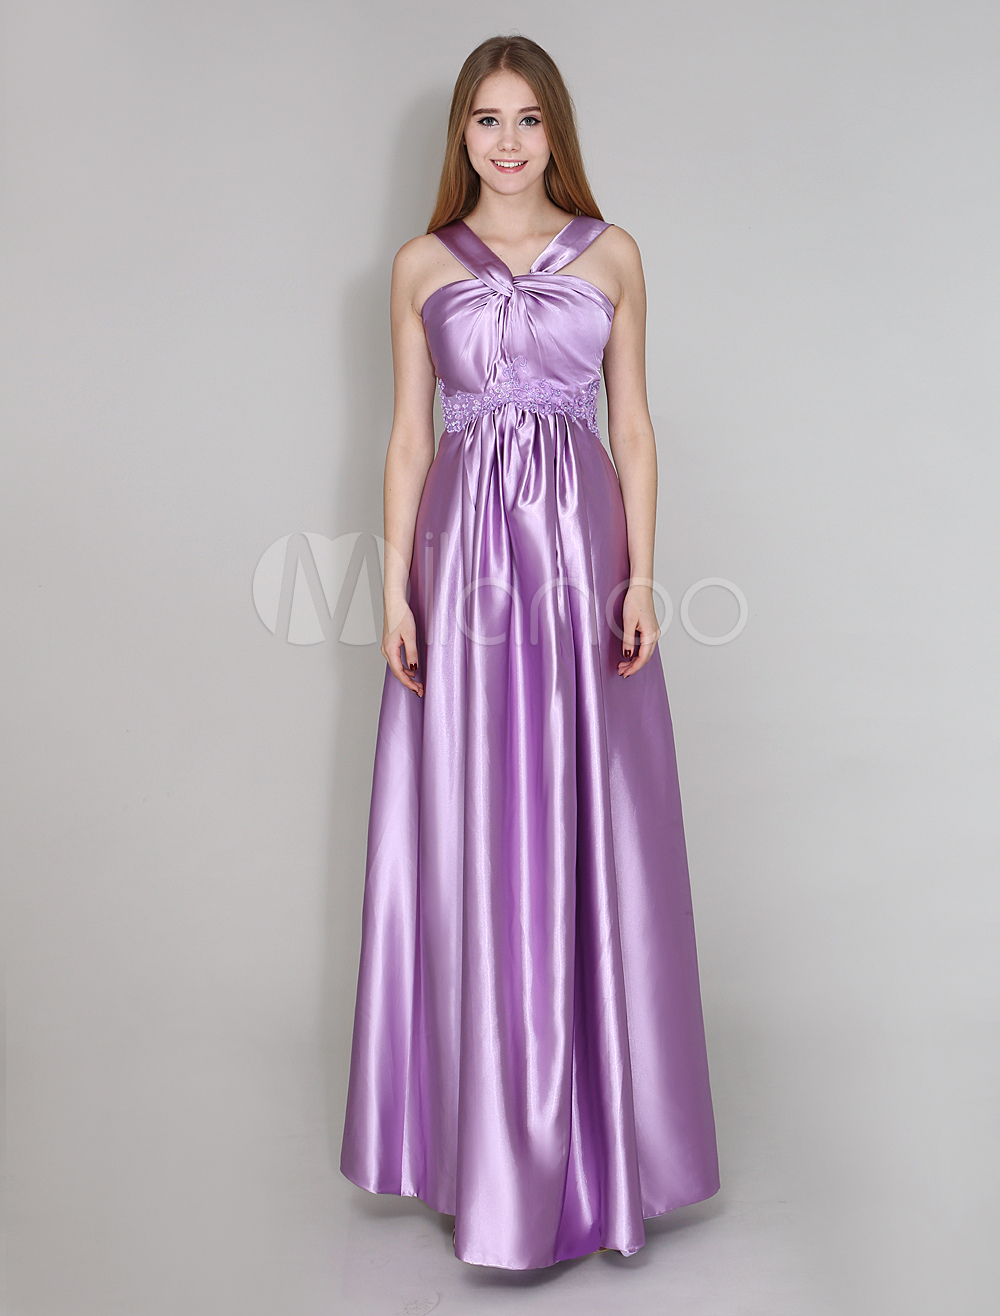 Floor-Length Lilac Bridesmaid Dress With Sheath Twisted Satin Wedding Guest Dress